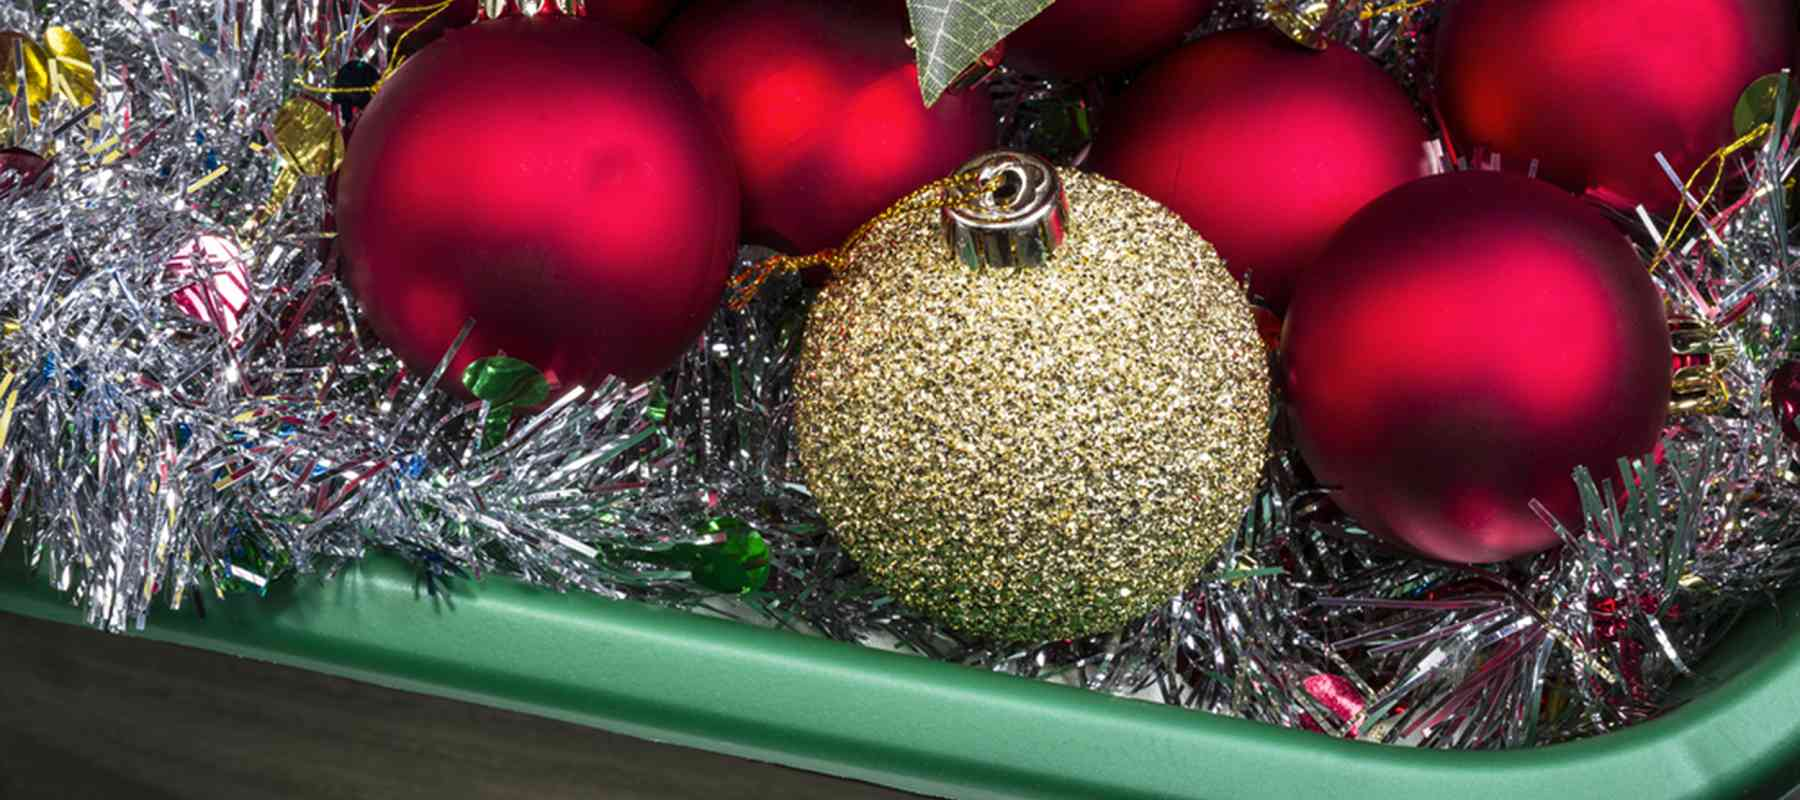 Tips for Storing Holiday Decorations